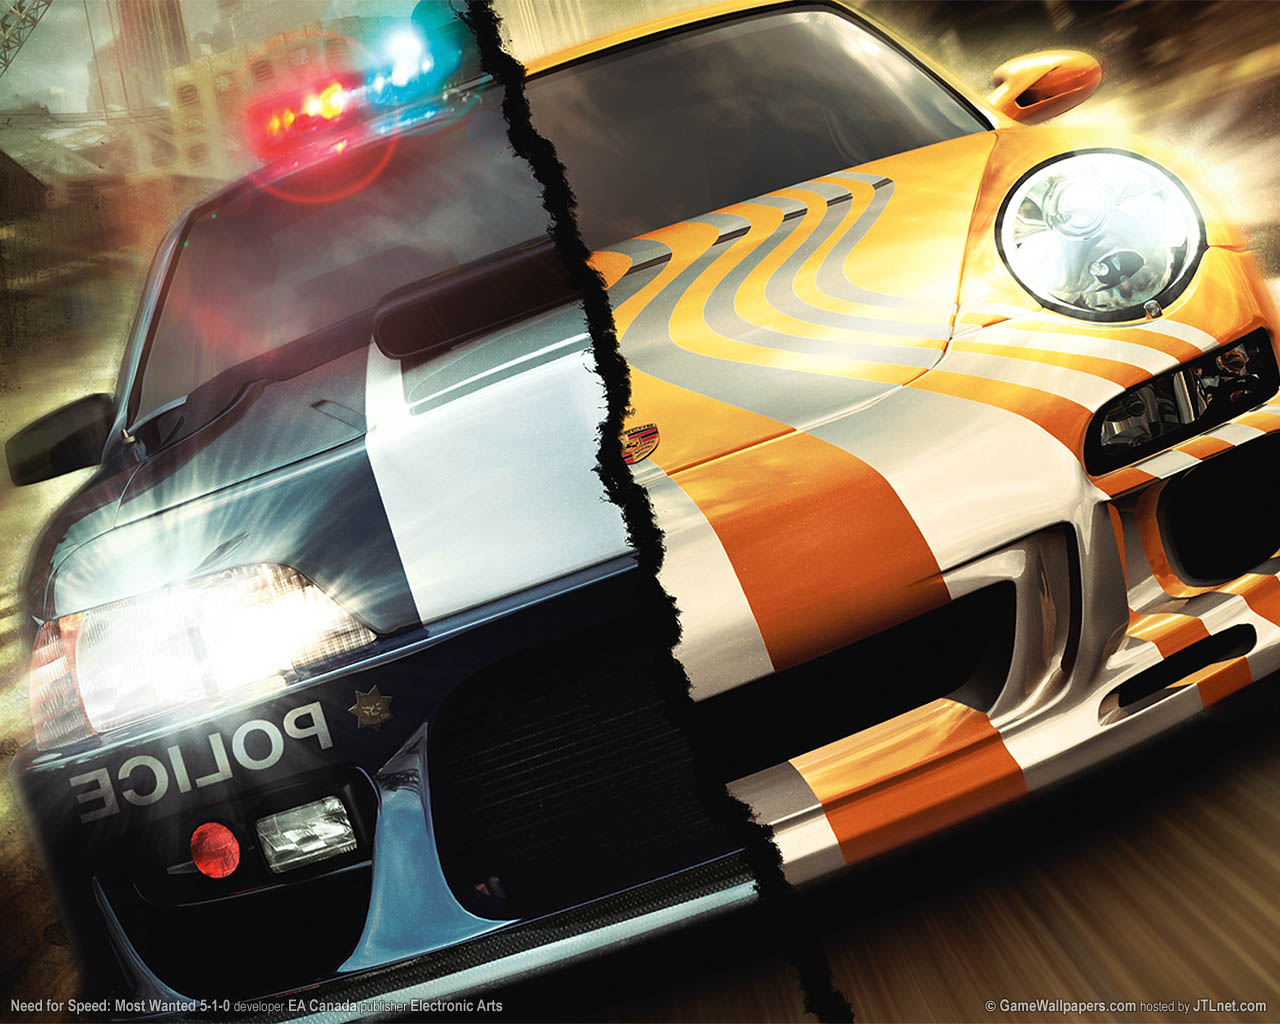 Need For Speed Most Wanted Races To Nintendo Wii U